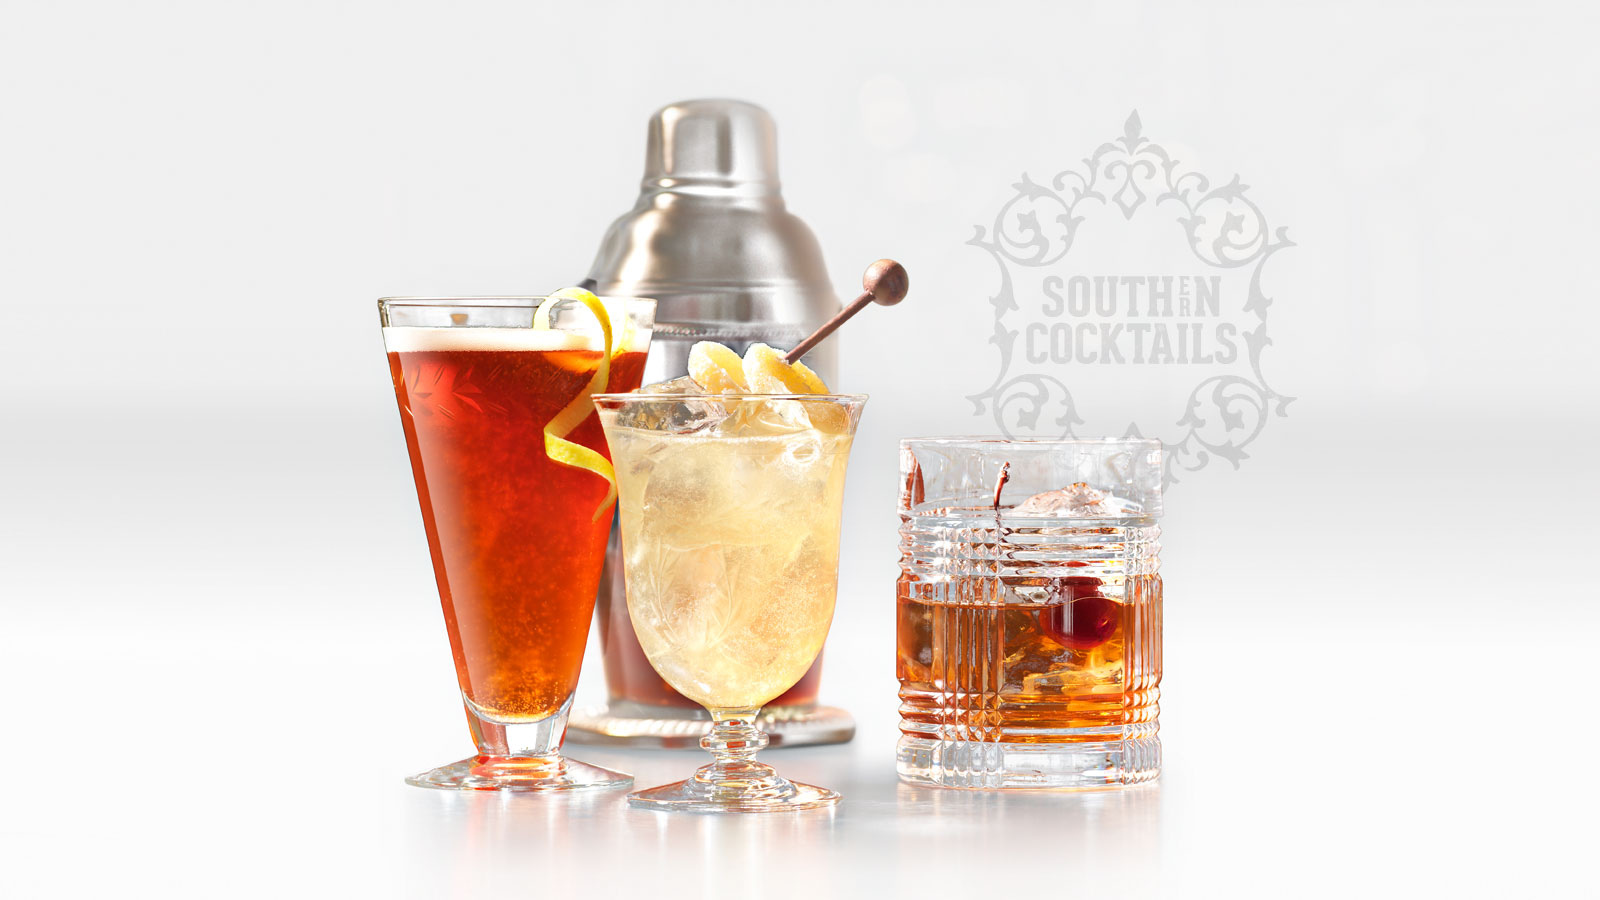 LCBO Southern Cocktails